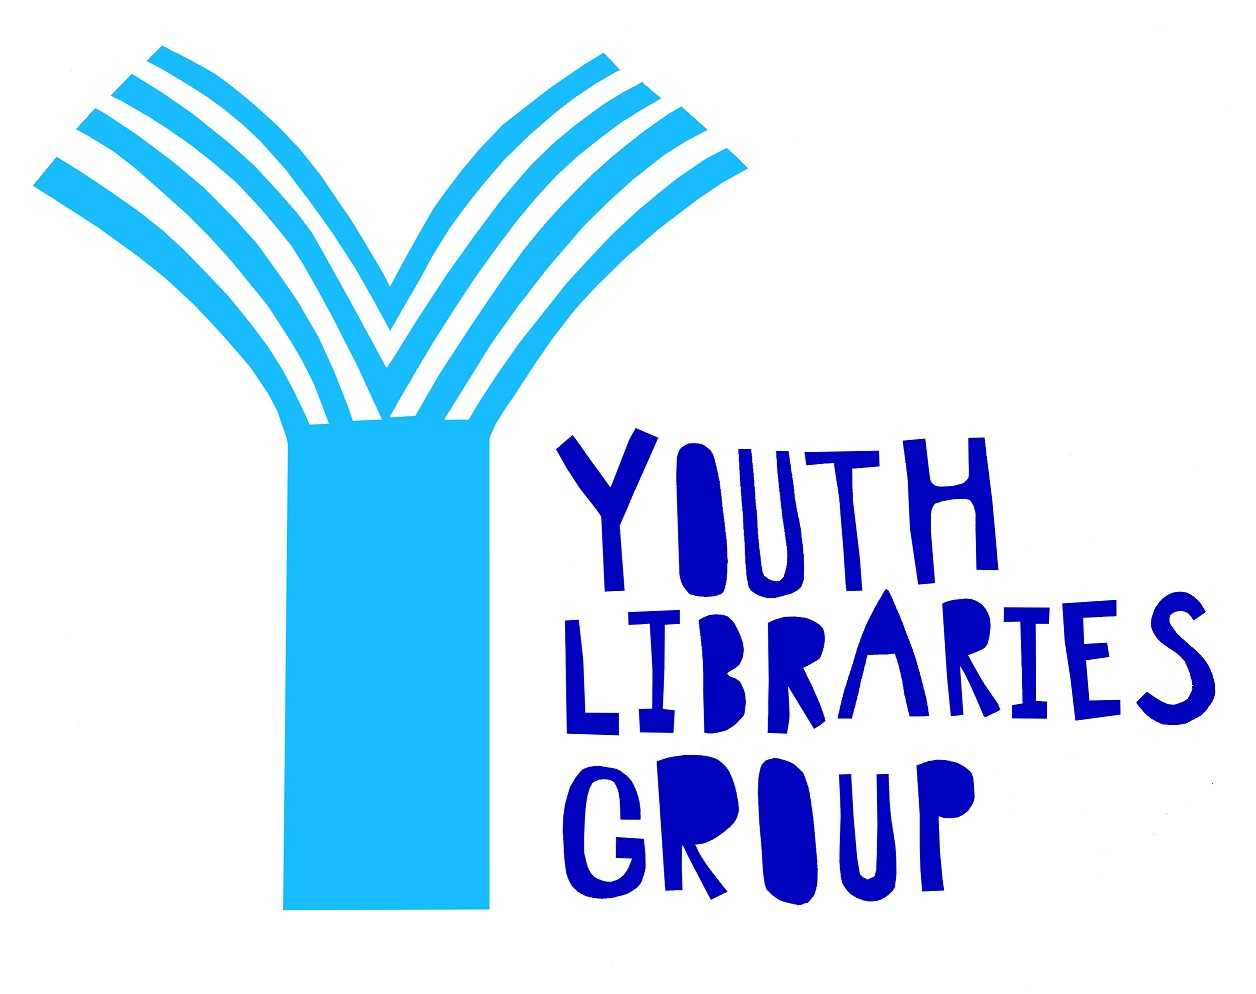 Youth Libraries Group logo